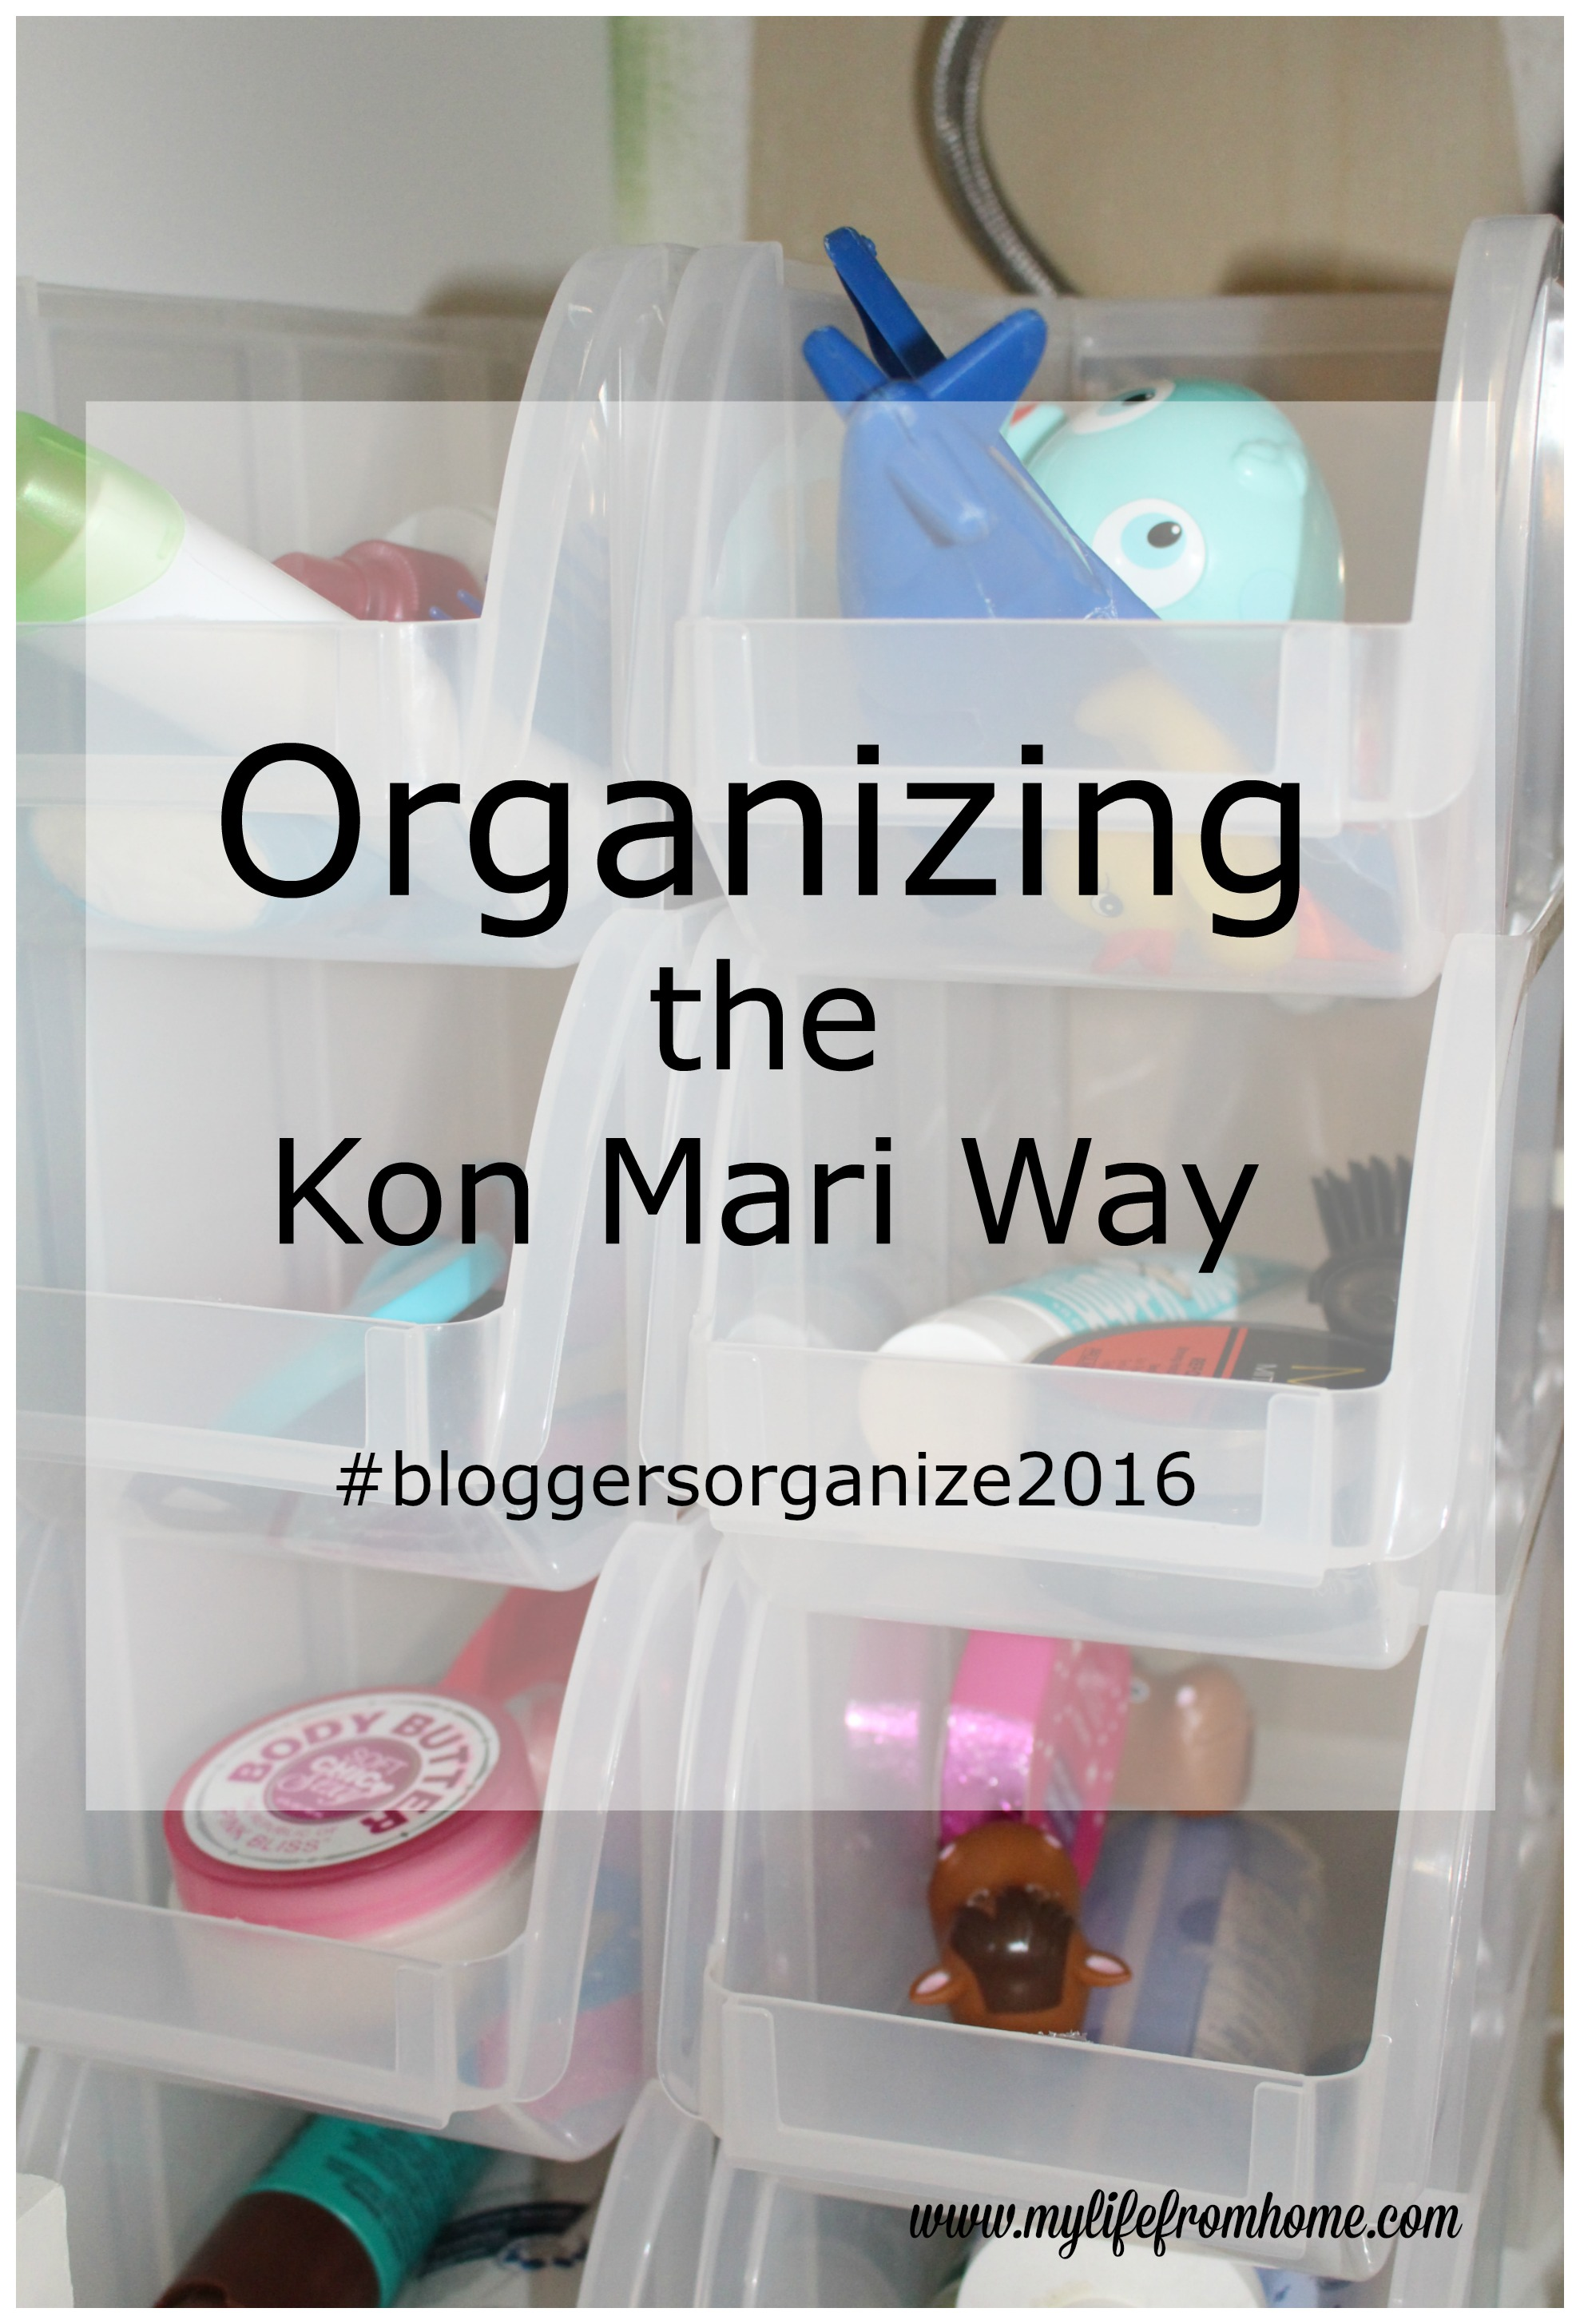 Organizing the Kon Mari Way Small Bathroom Storage by www.mylifefromhome.com